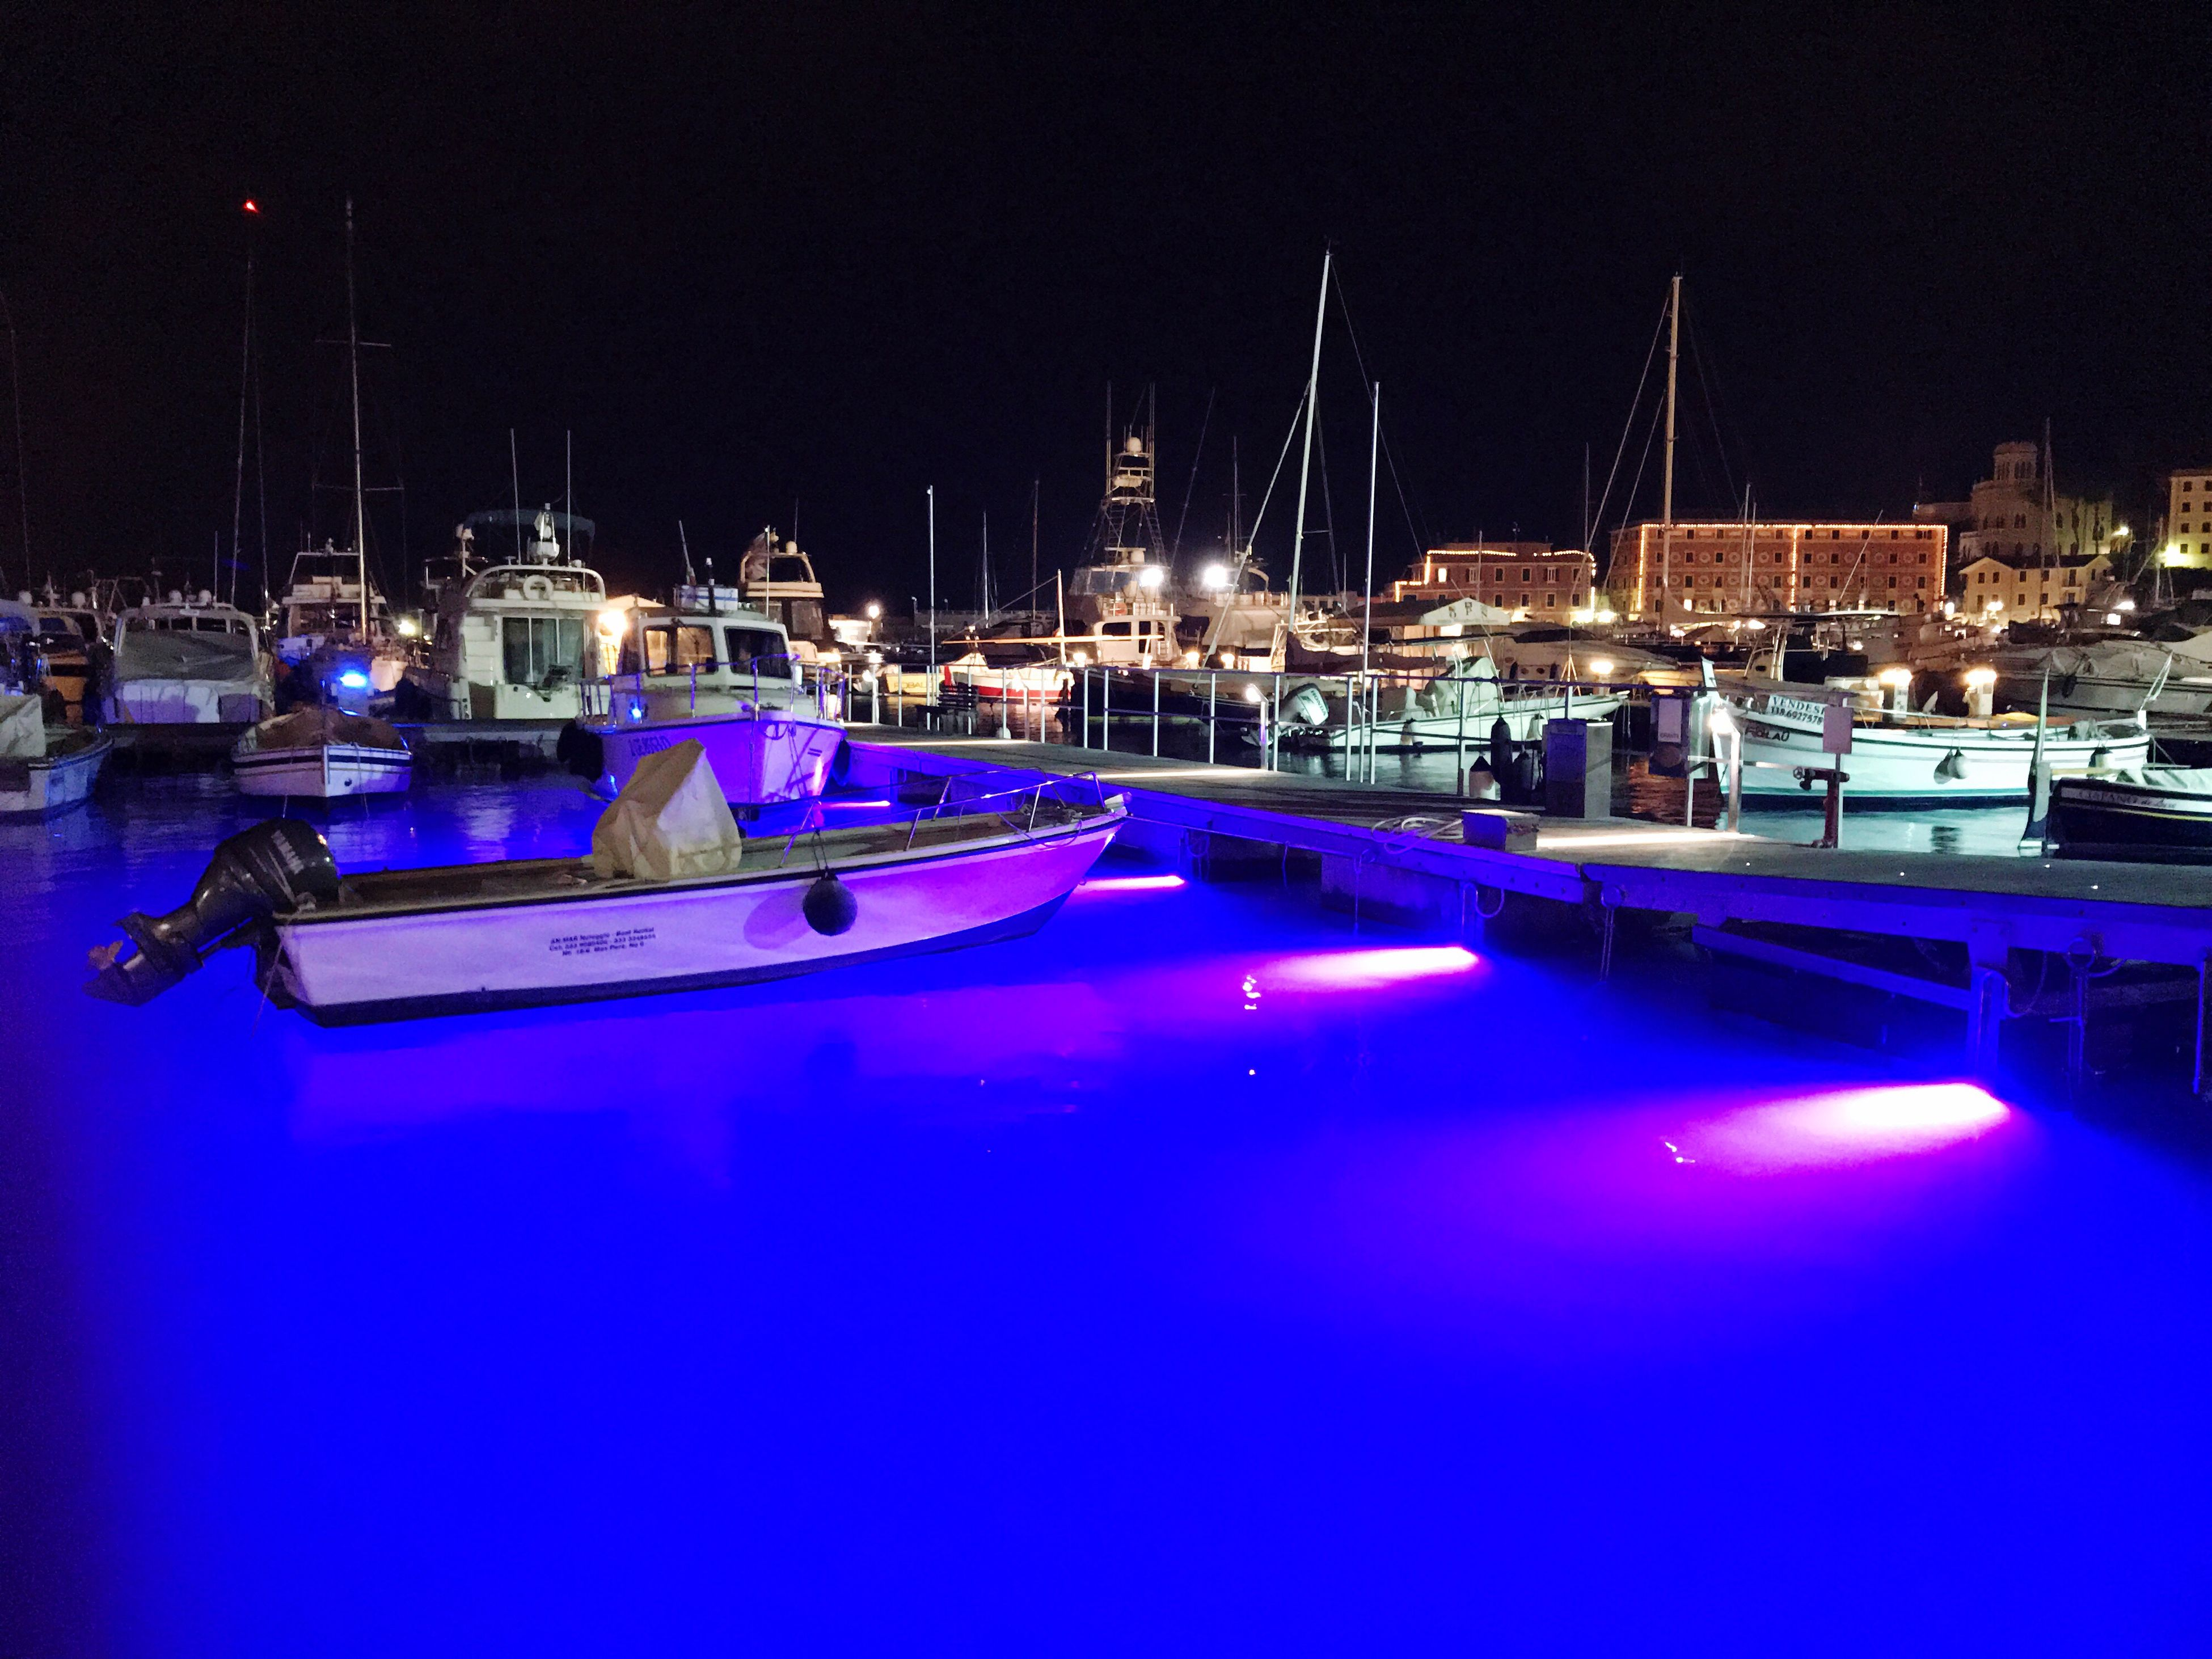 night, nautical vessel, reflection, water, illuminated, no people, moored, architecture, outdoors, sky